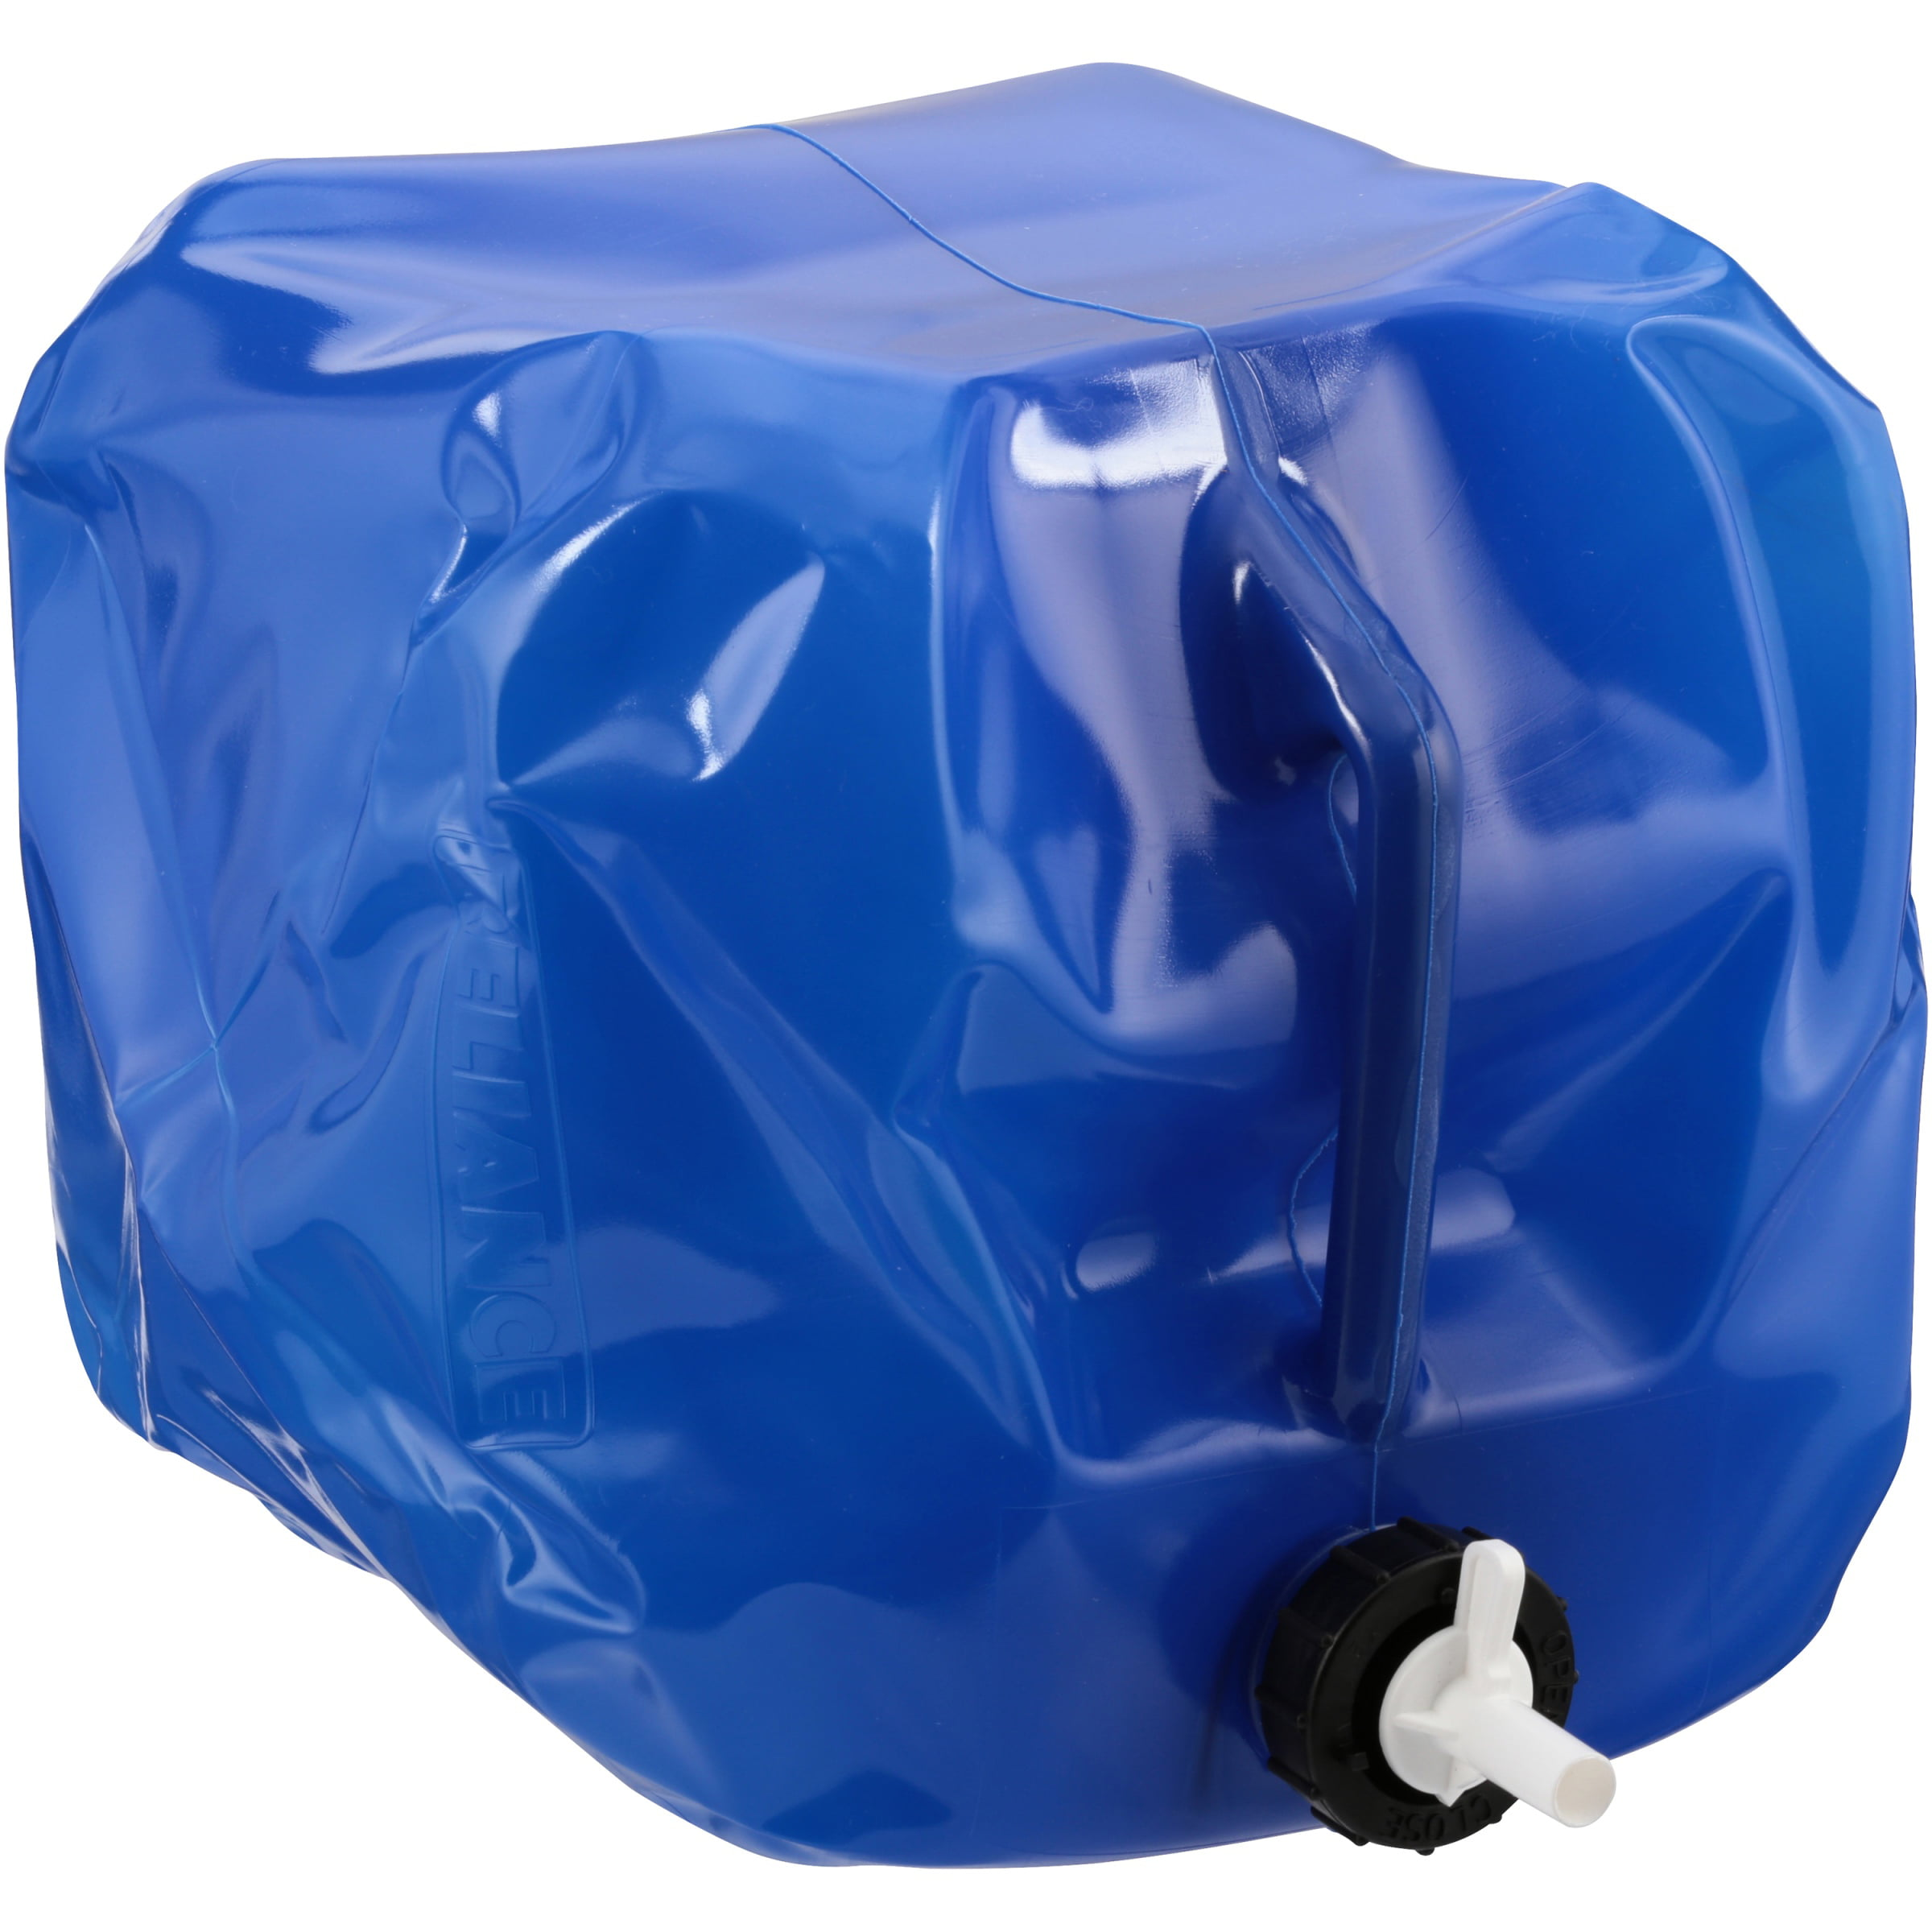 Reliance Fold-A-Carrier Collapsible Water Container 5 gal Pack by Reliance Products L.P.